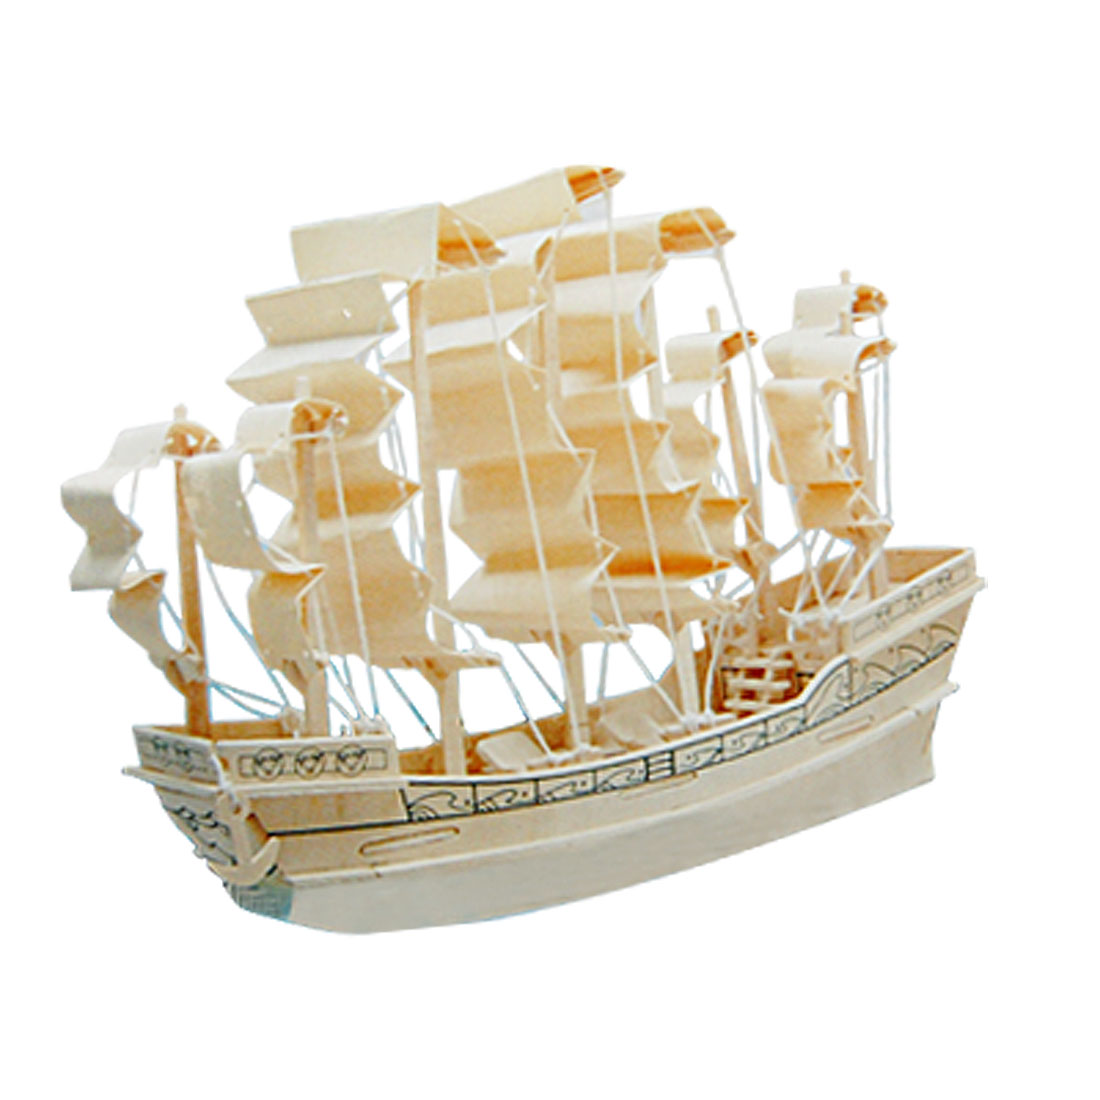 Ancient Sailboat Puzzle Toy Model Woodcraft Construction Kit